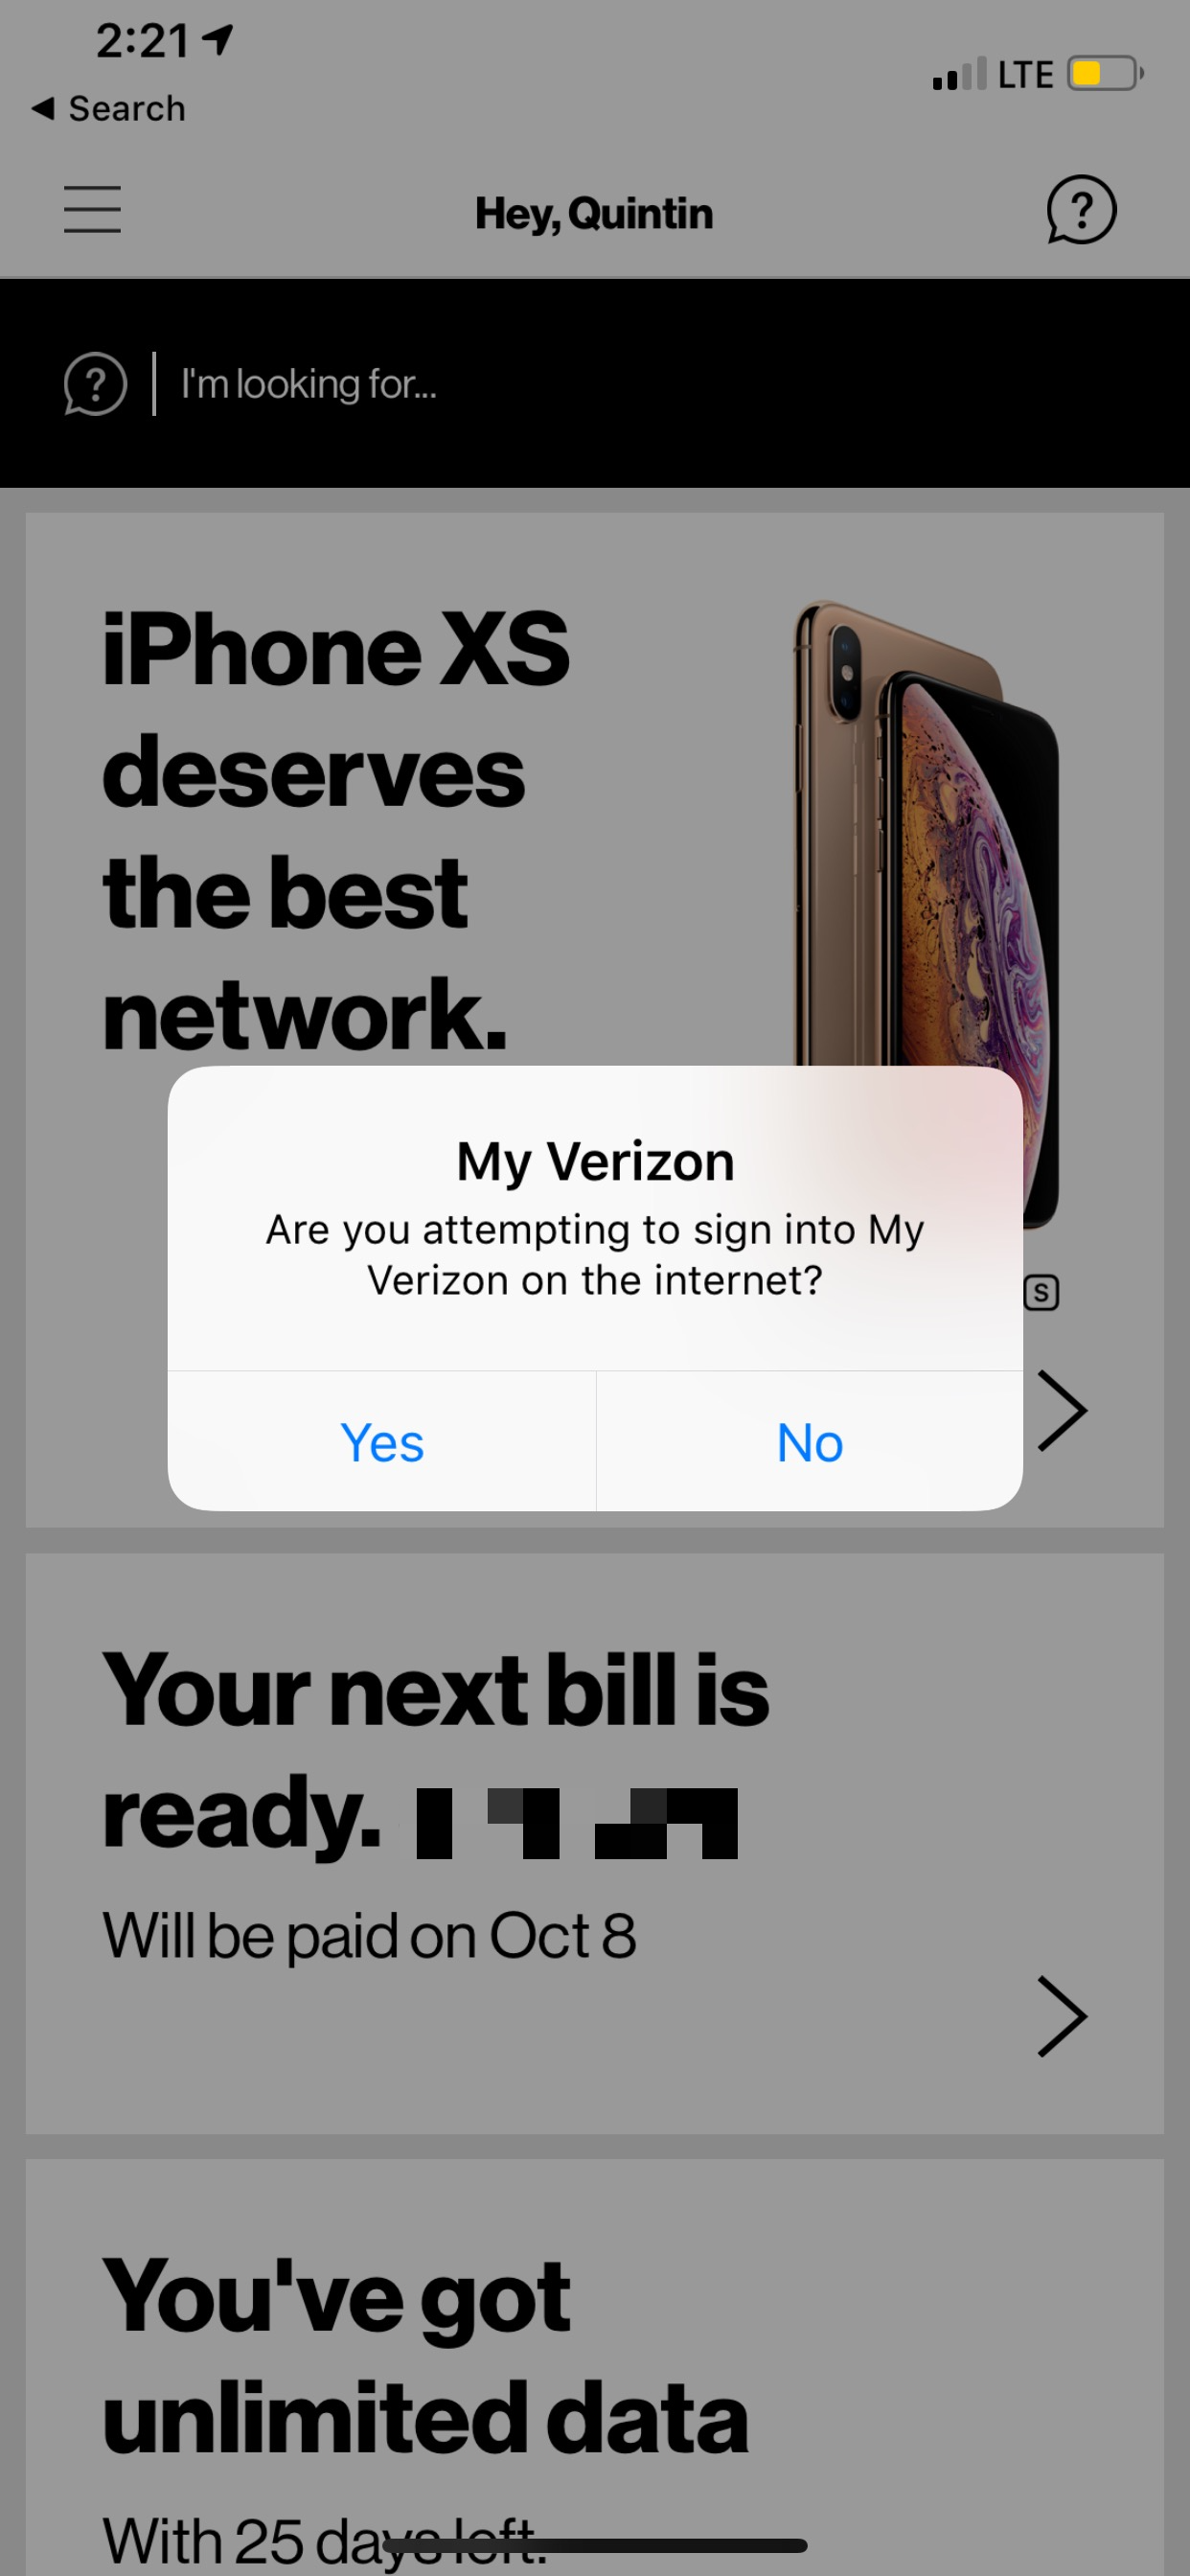 Swipe the notification and wait for the dialog in-app. Look at that lovely indeterminate progress spinner and super unclear instructions. So well designed.